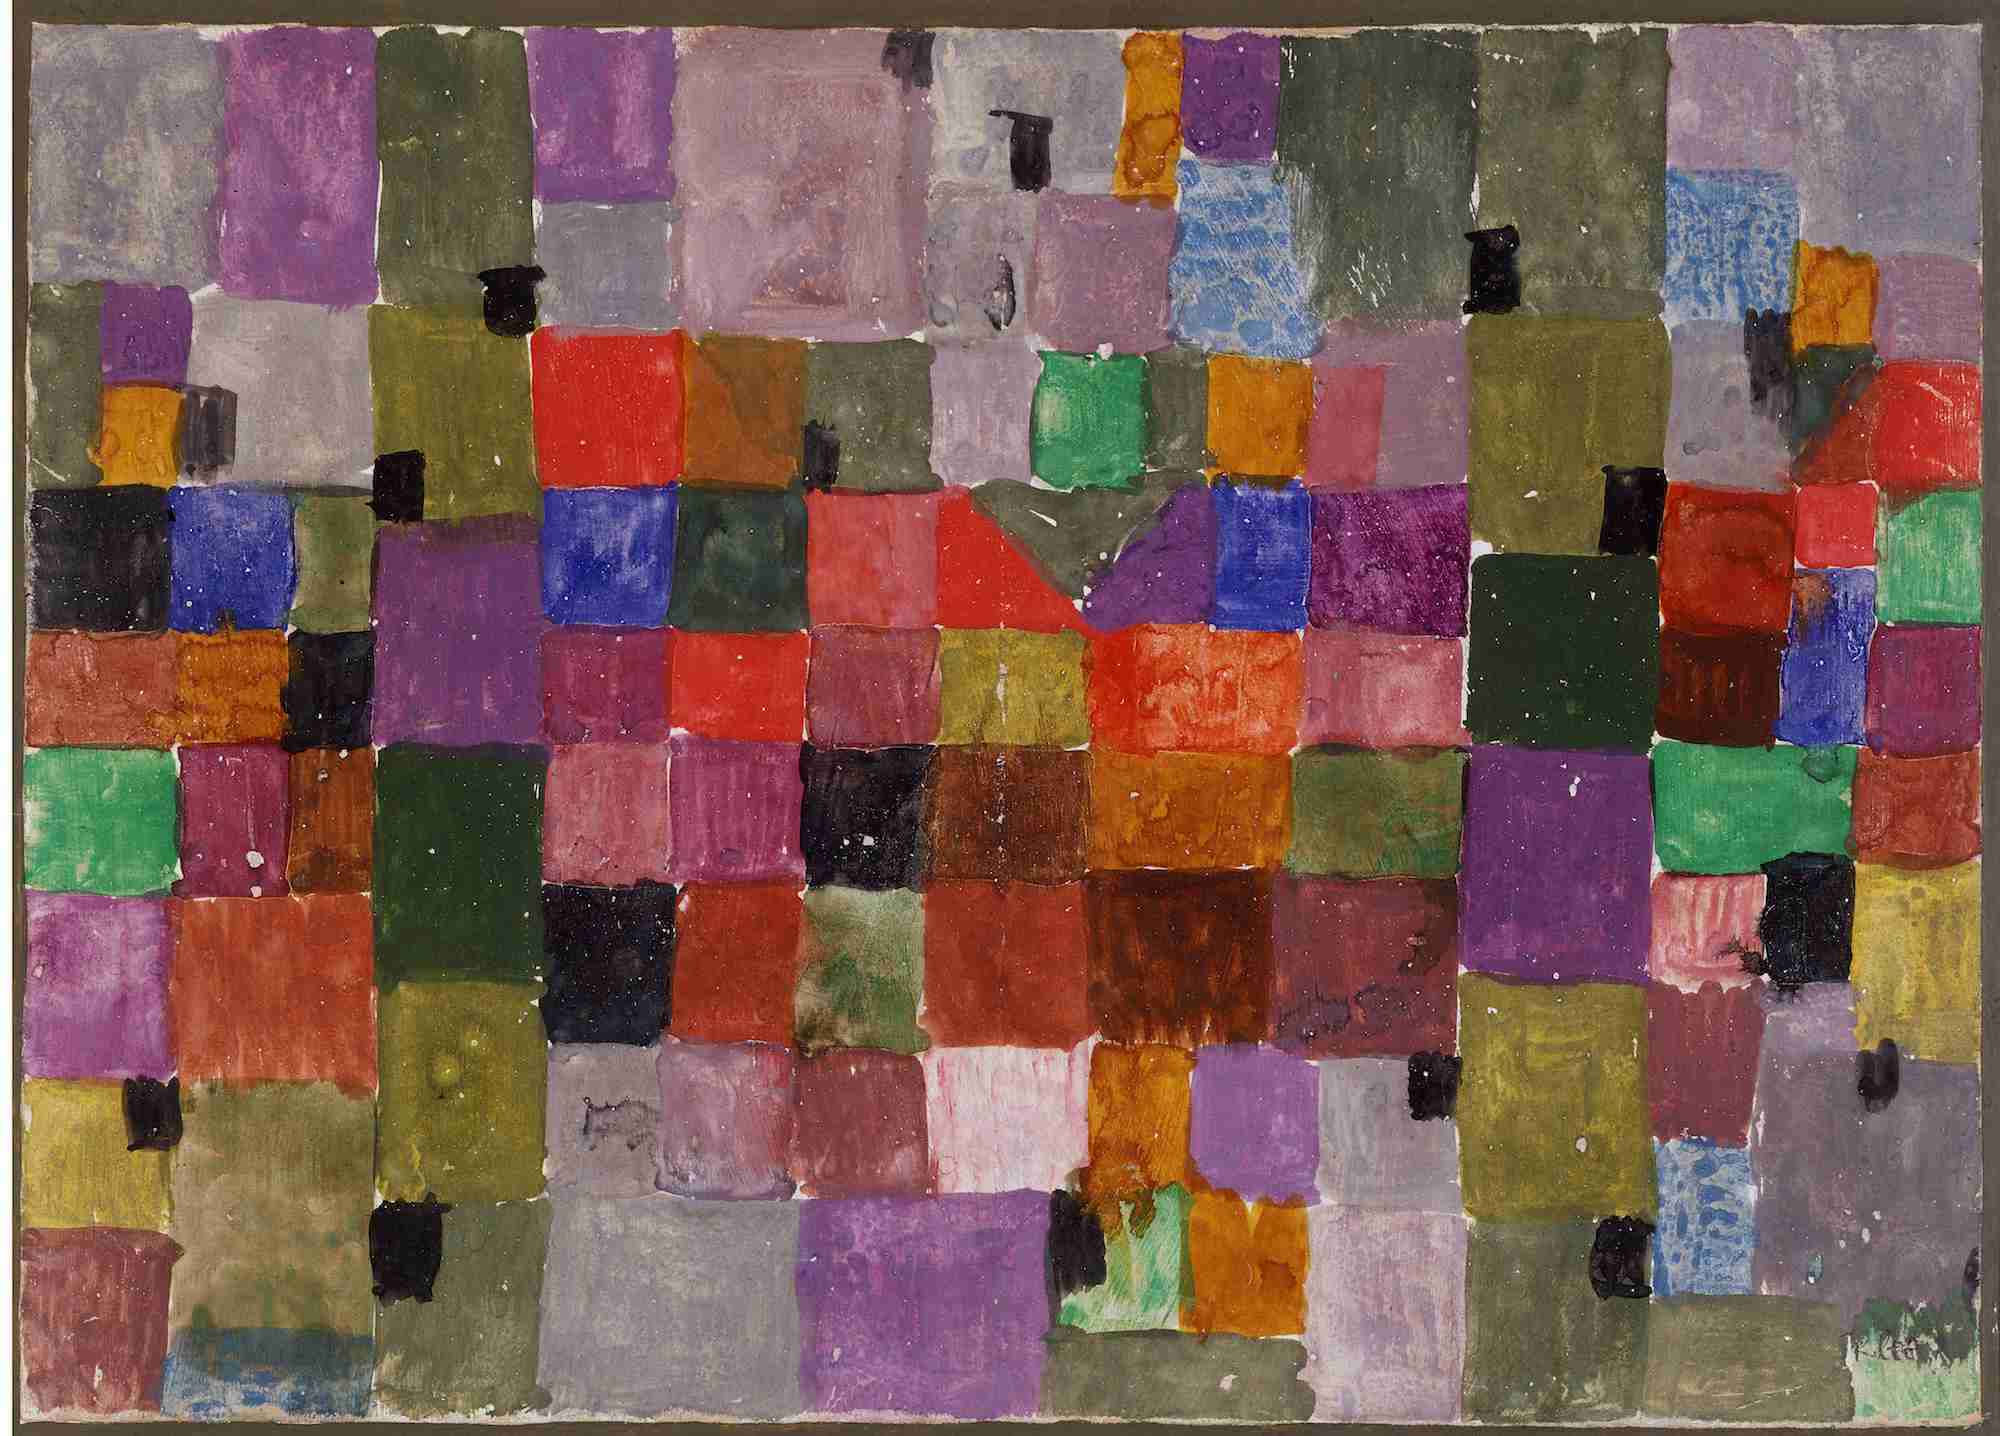 Multi-colored gridded watercolor painting by Paul Klee titled Northern Village